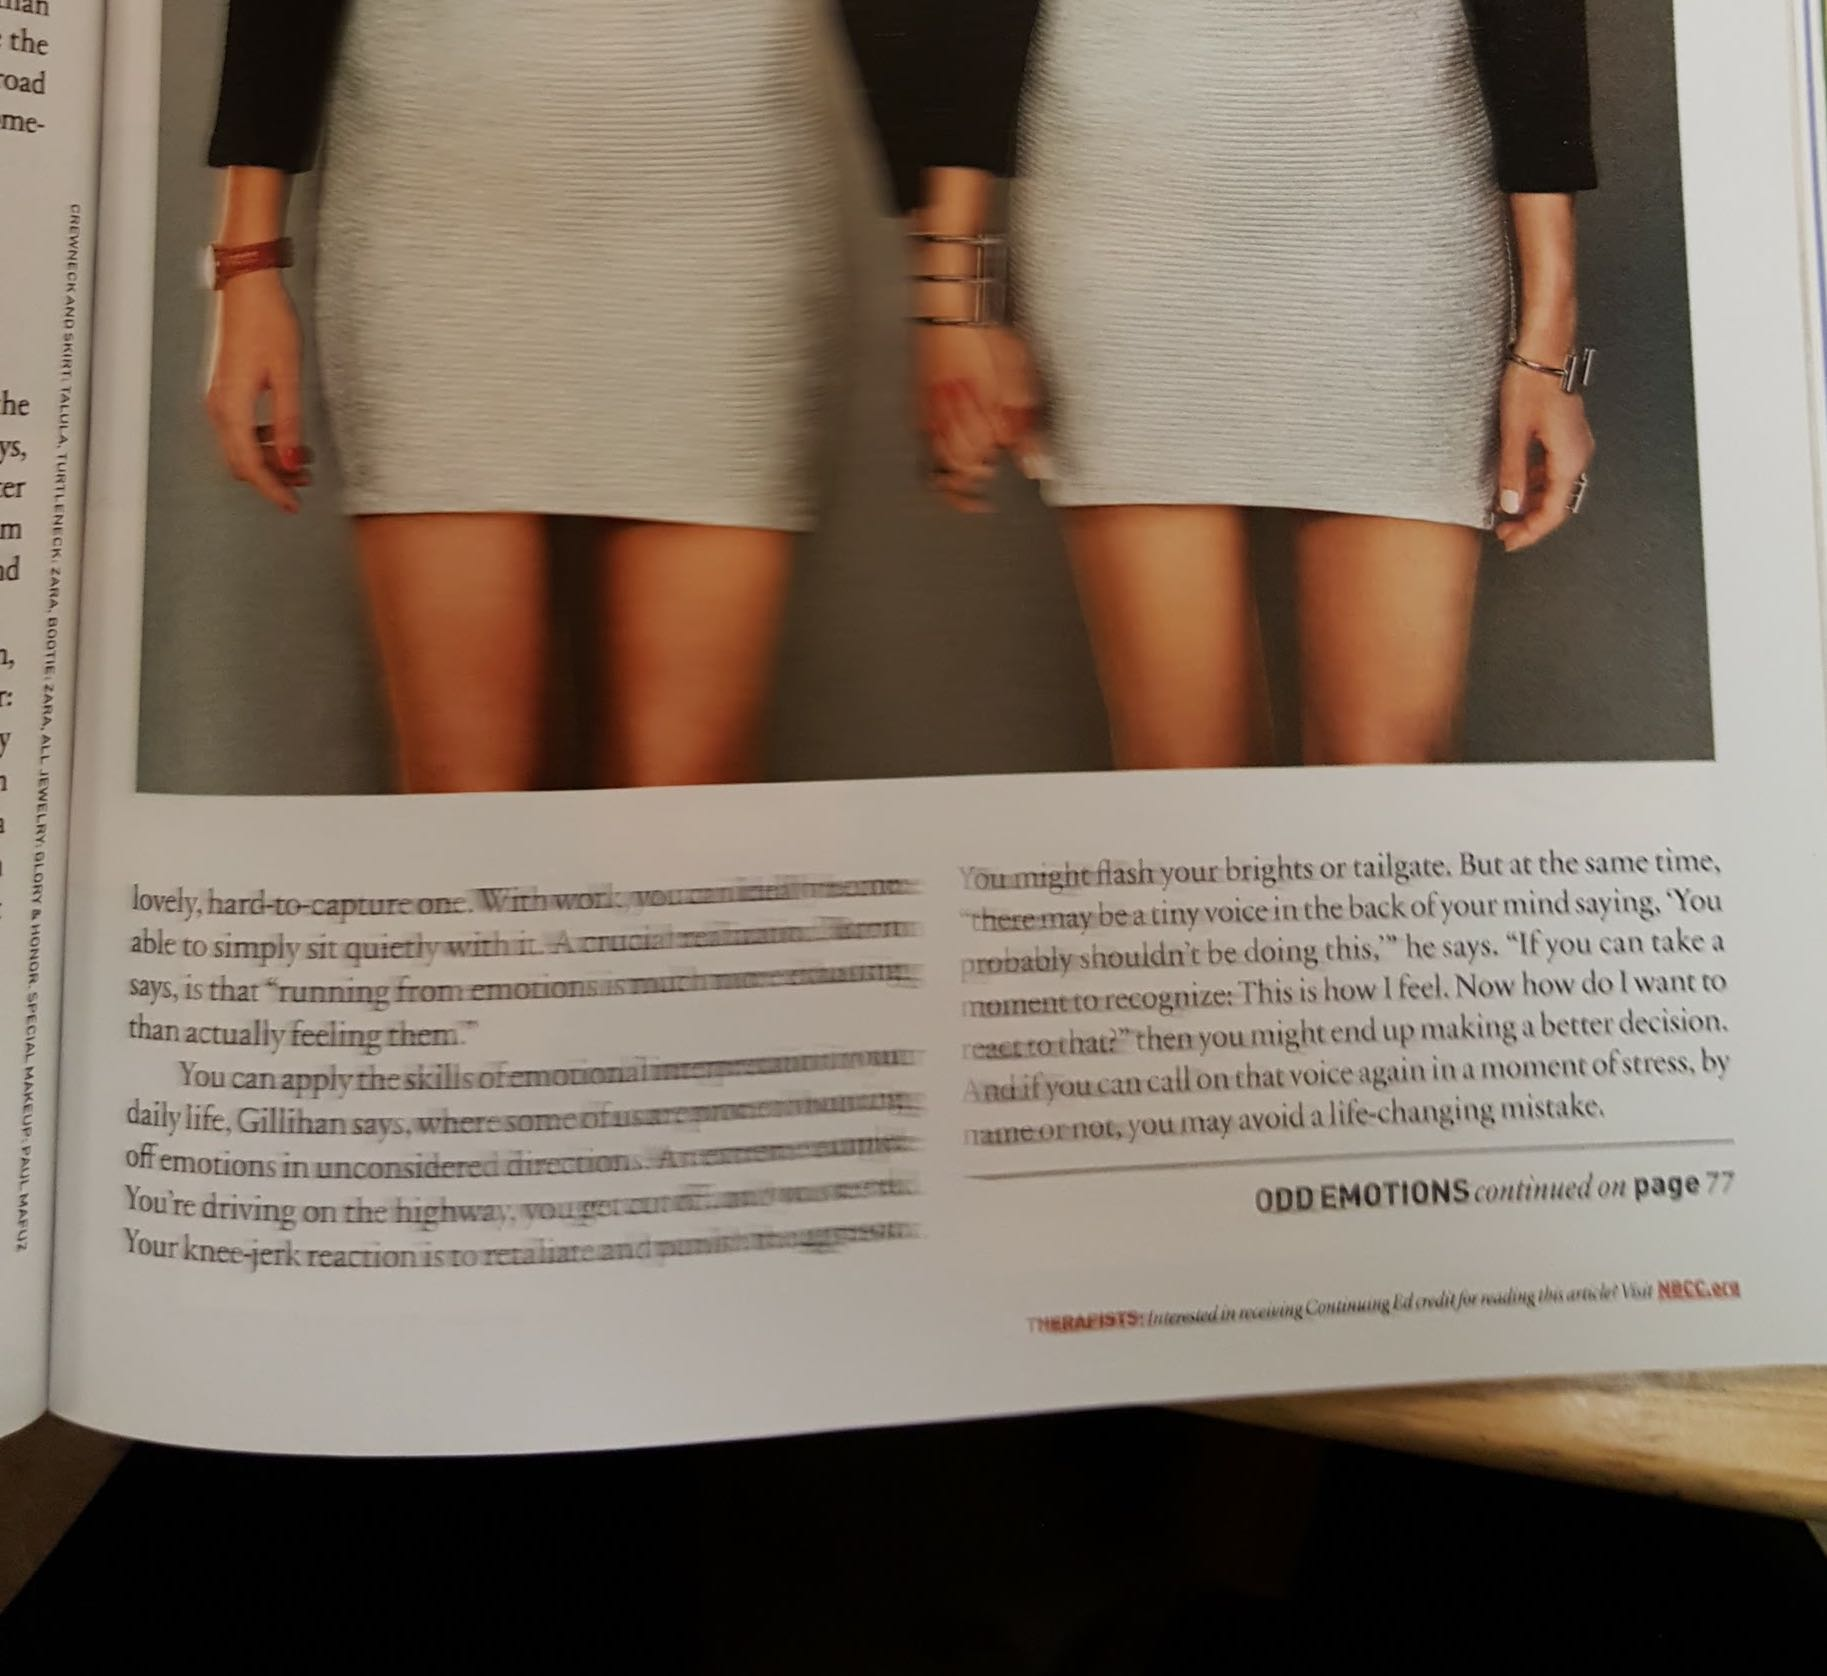 Two women in white dresses with black sleeves are holding hands. The text of